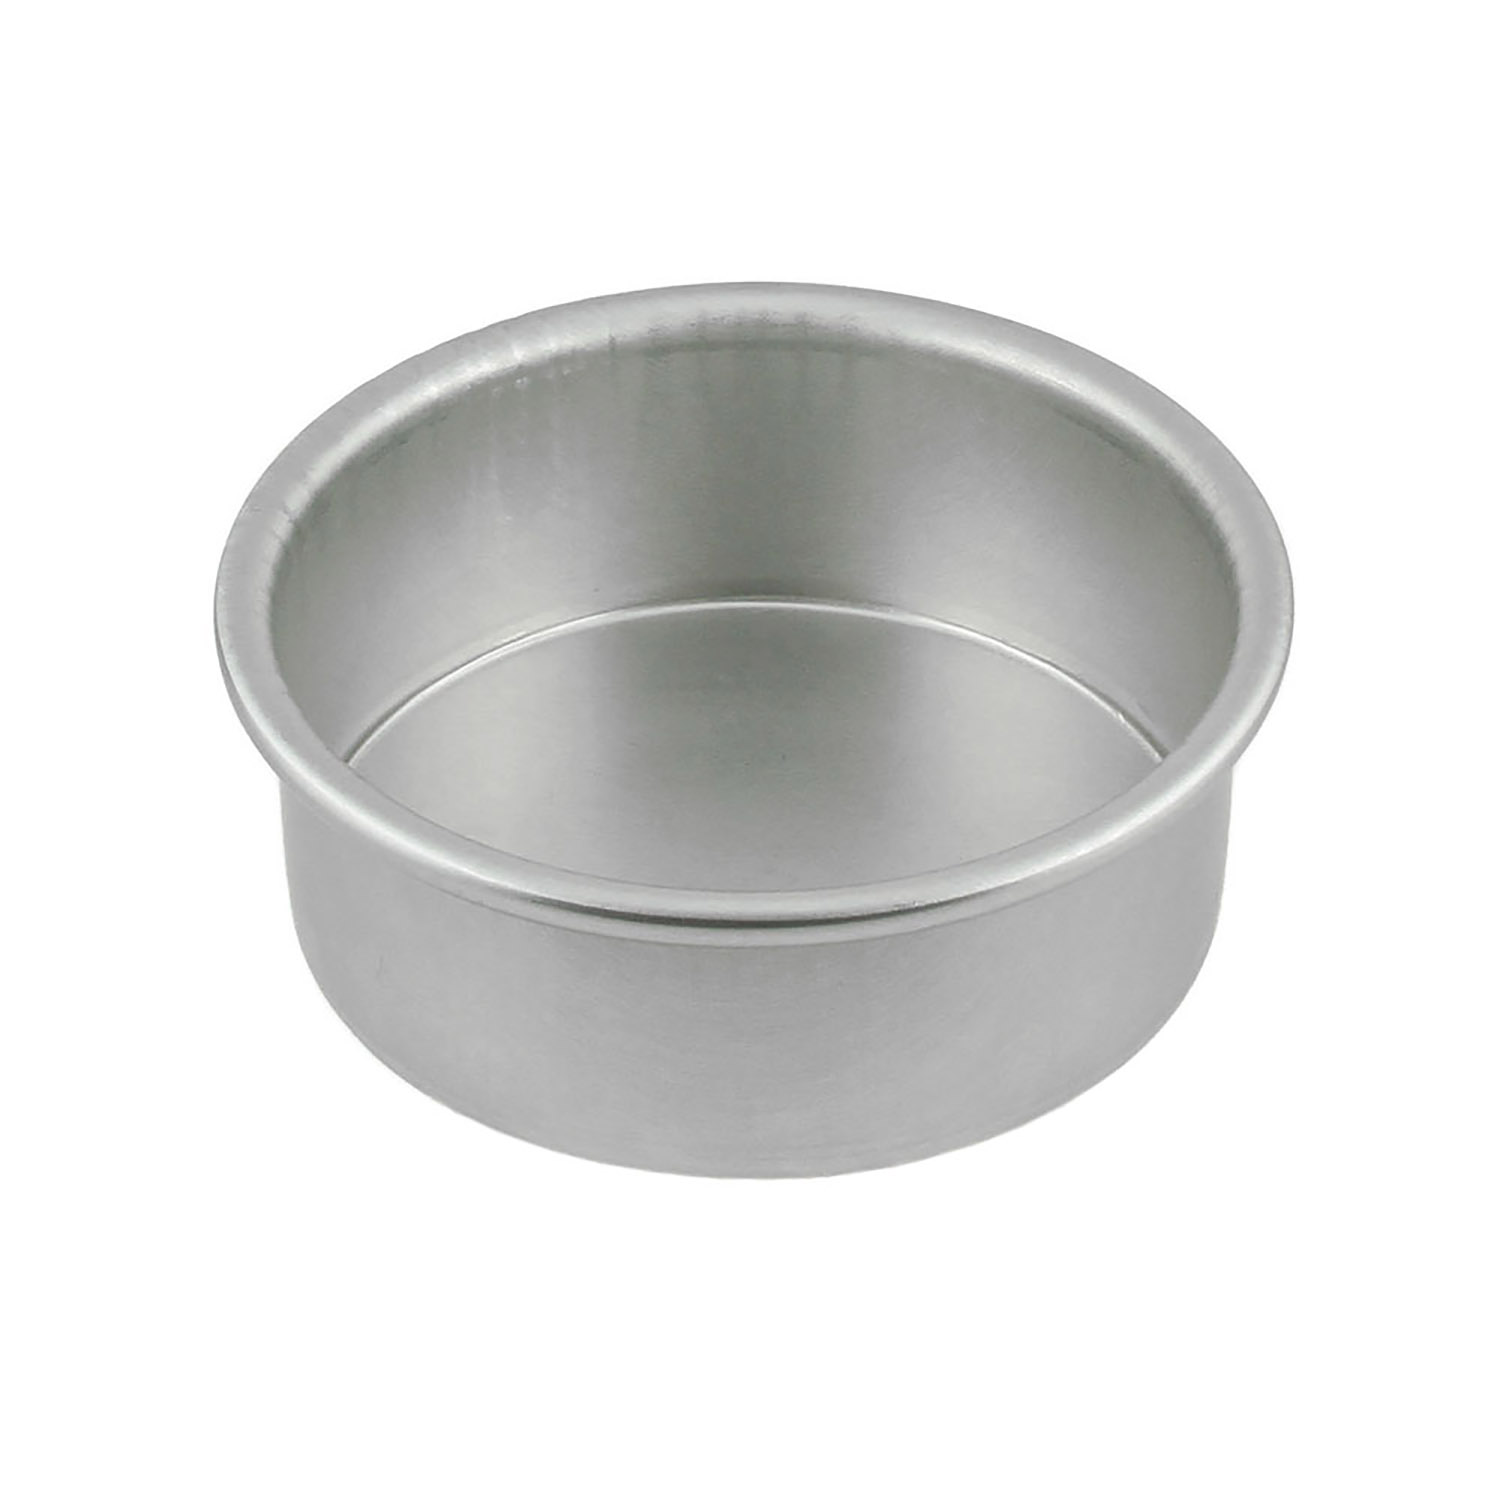 "5 x 2"" Magic Line Round Cake Pan"